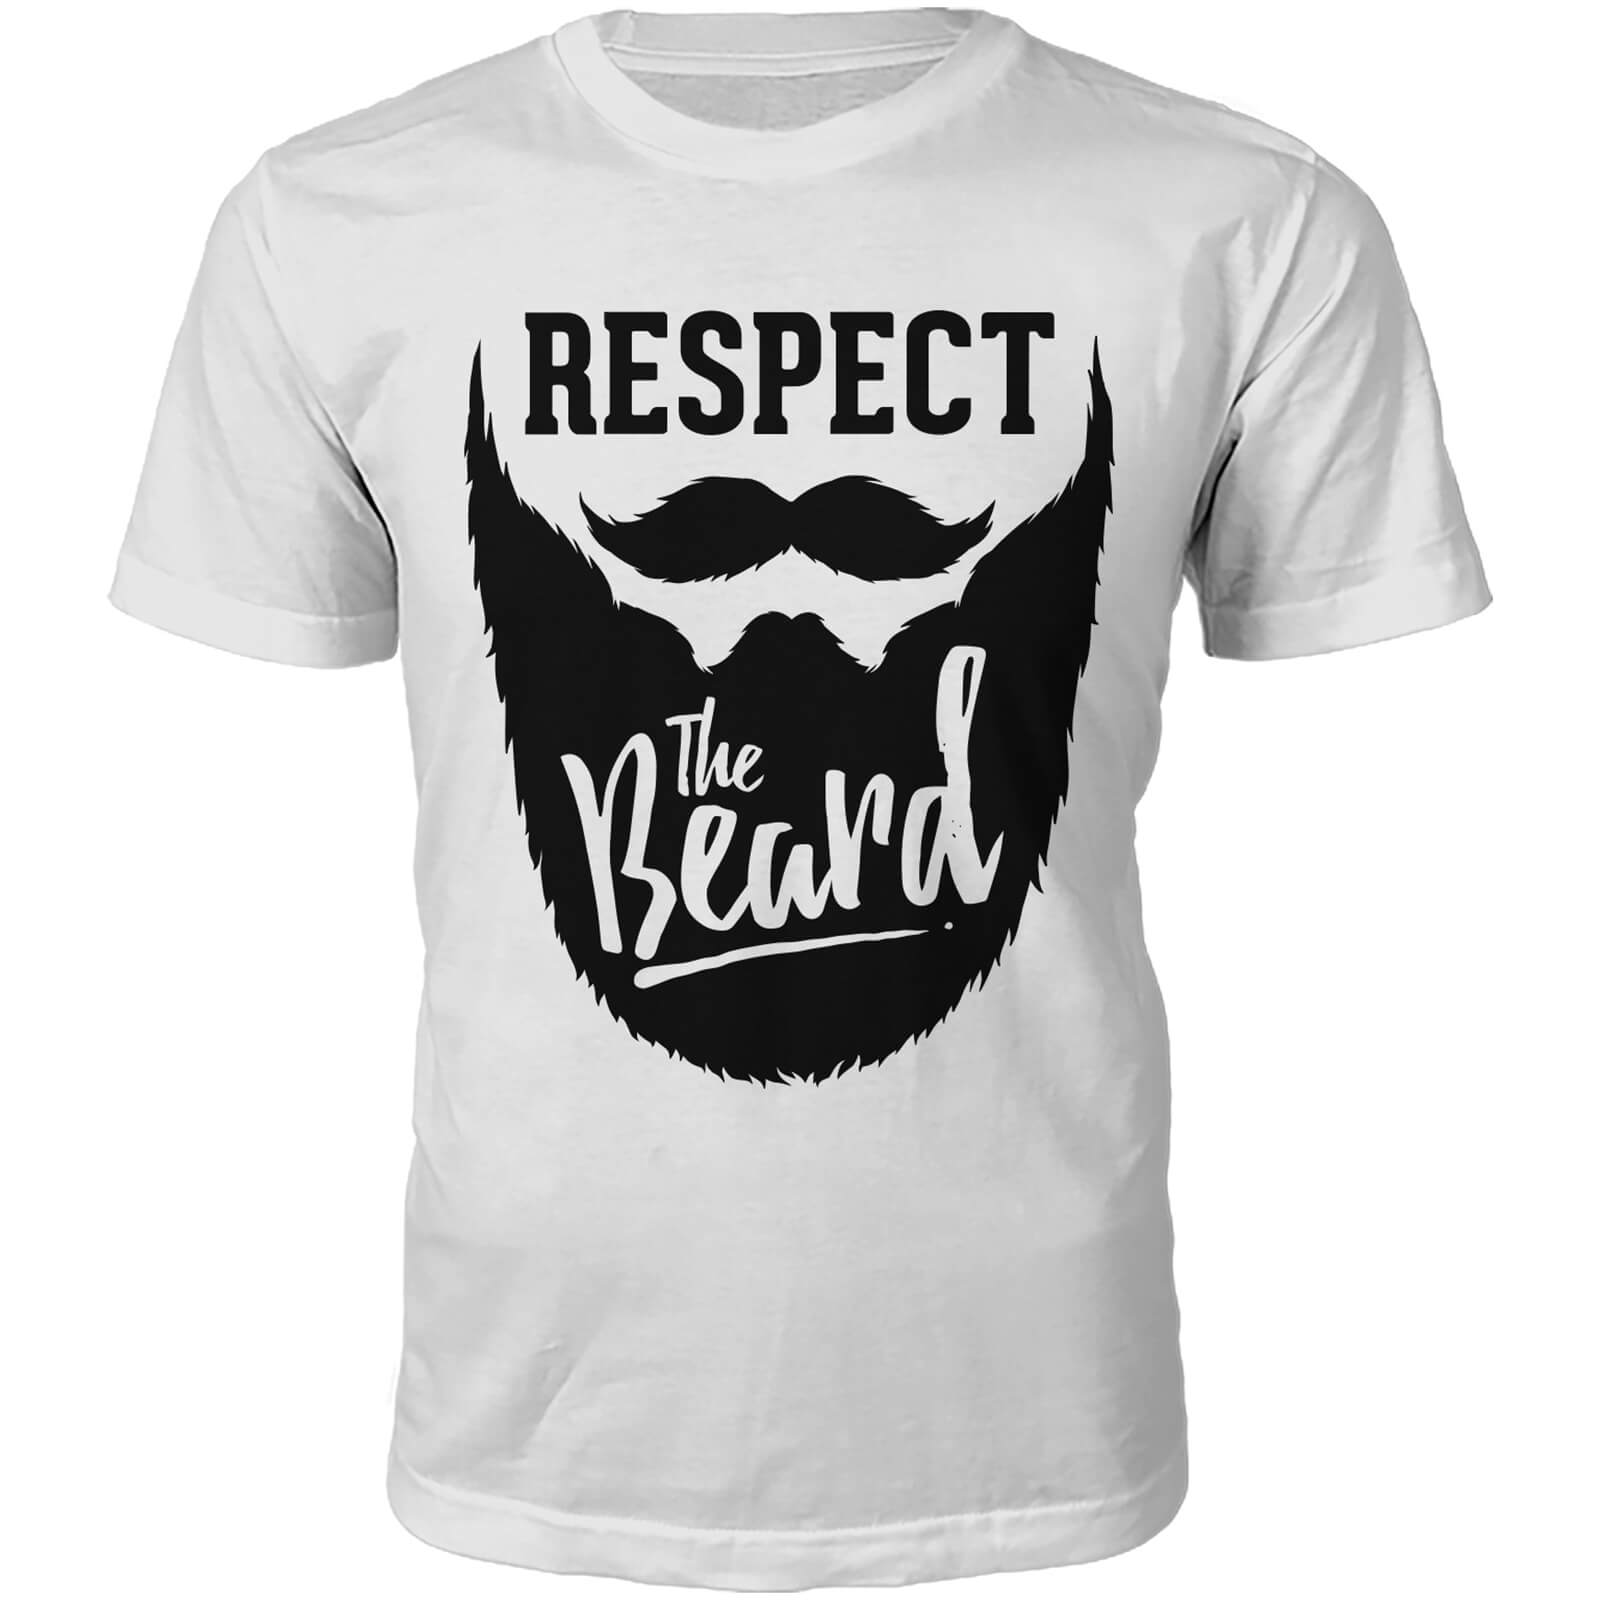 T-Shirt Homme Respect The Beard -Blanc